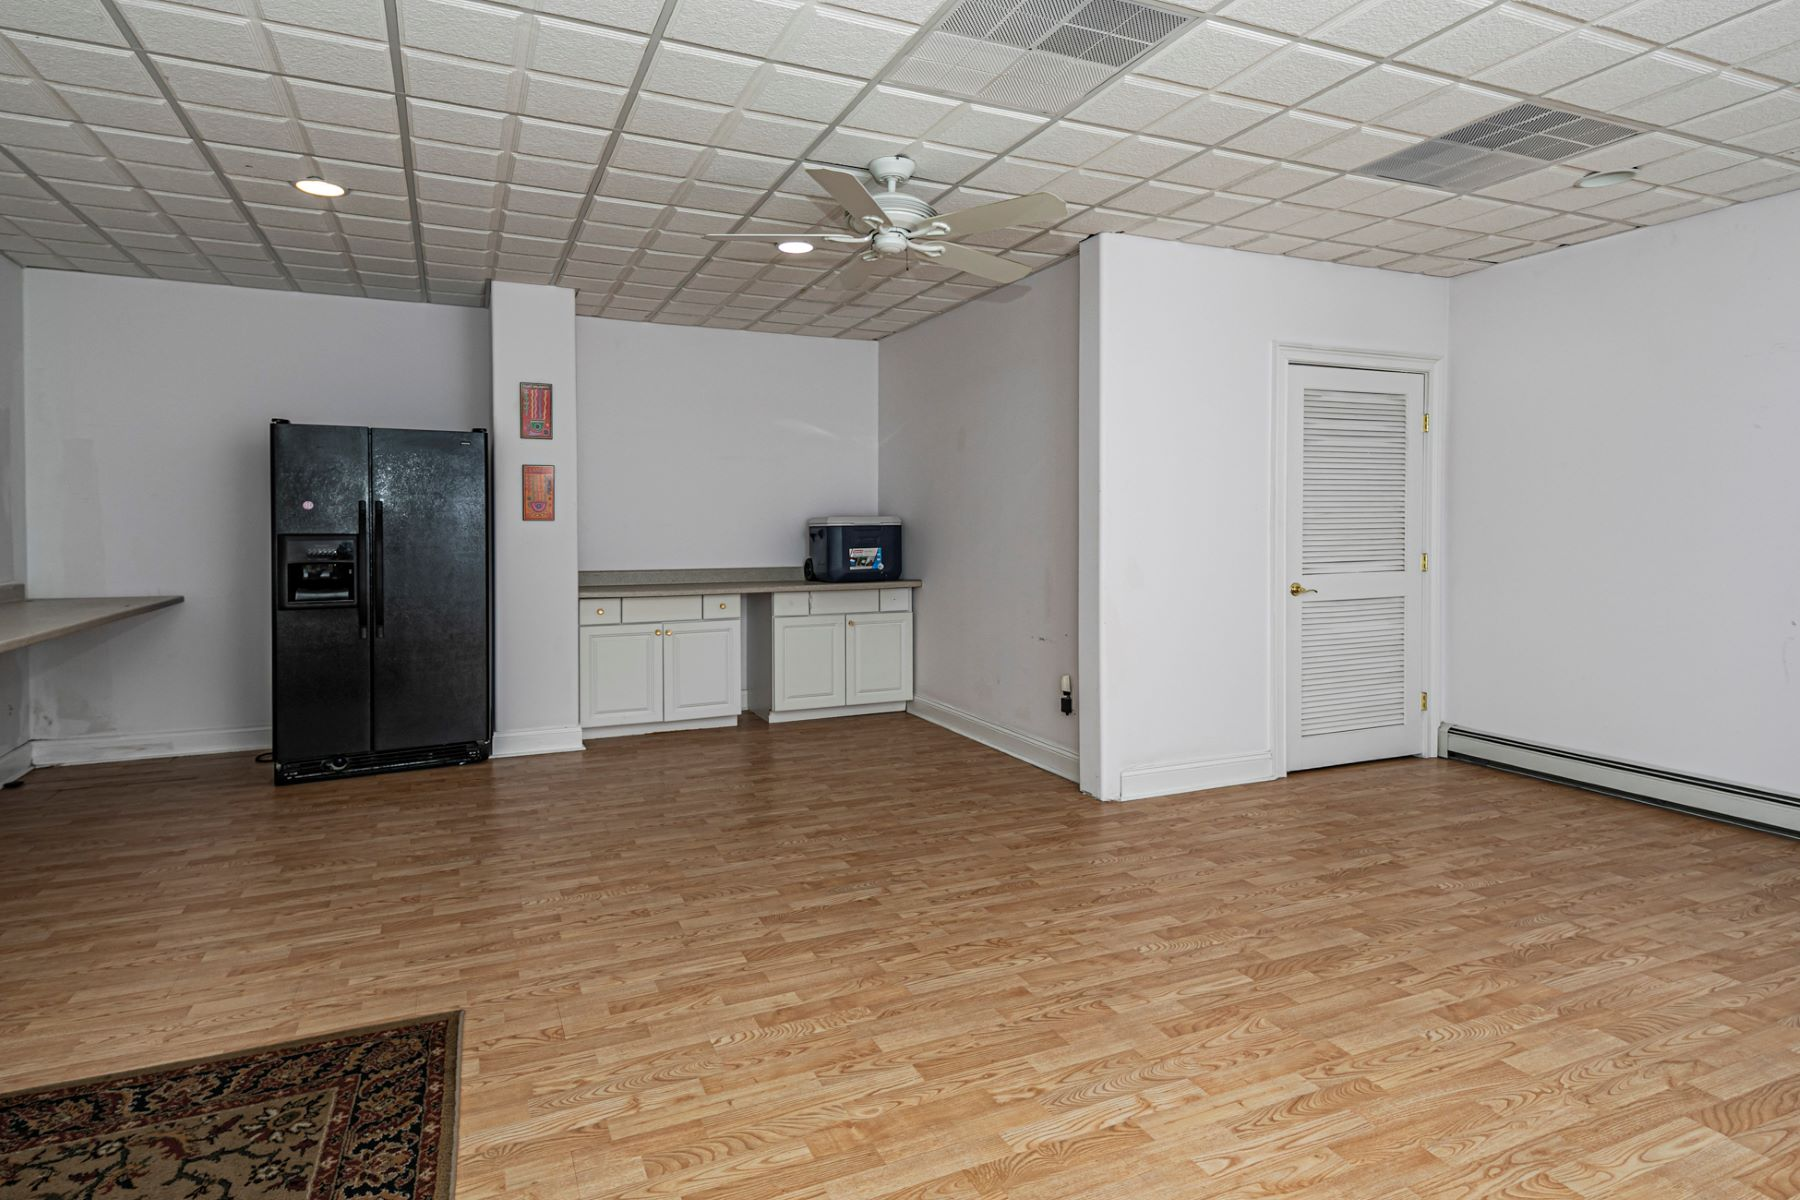 Additional photo for property listing at Large, Lofty & Like No Other 176 Westcott Road, Princeton, New Jersey 08540 United States